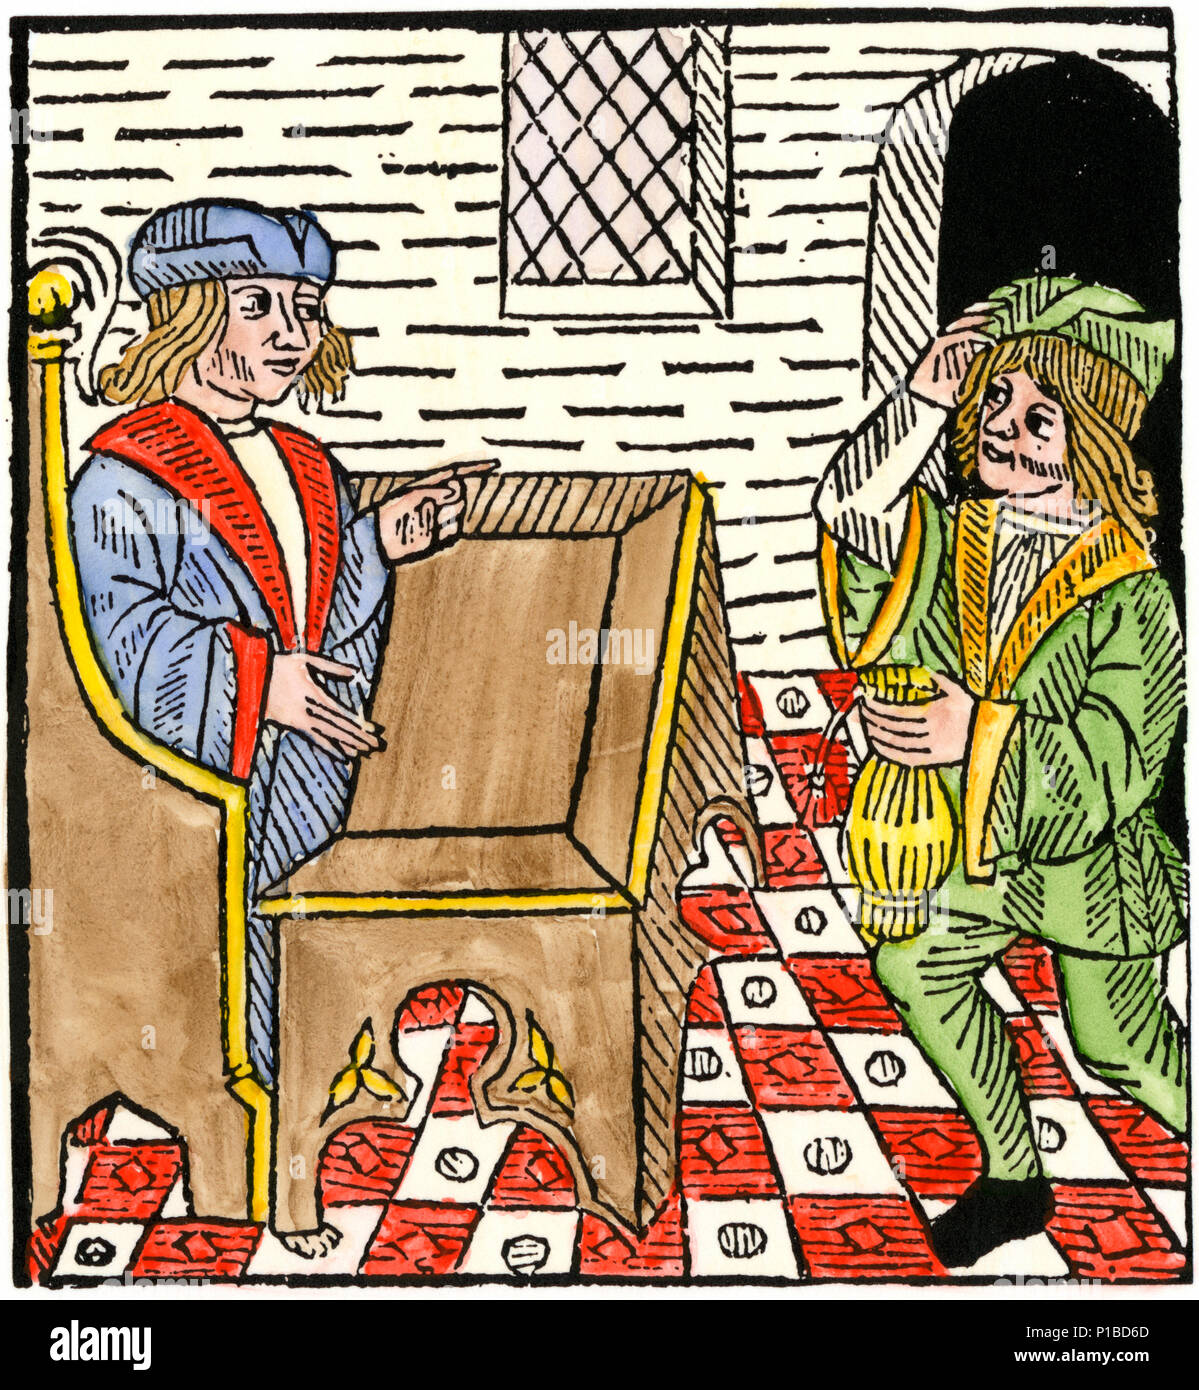 Tenant paying rent, from a book of surveying printed in England, 1523. Hand-colored woodcut - Stock Image